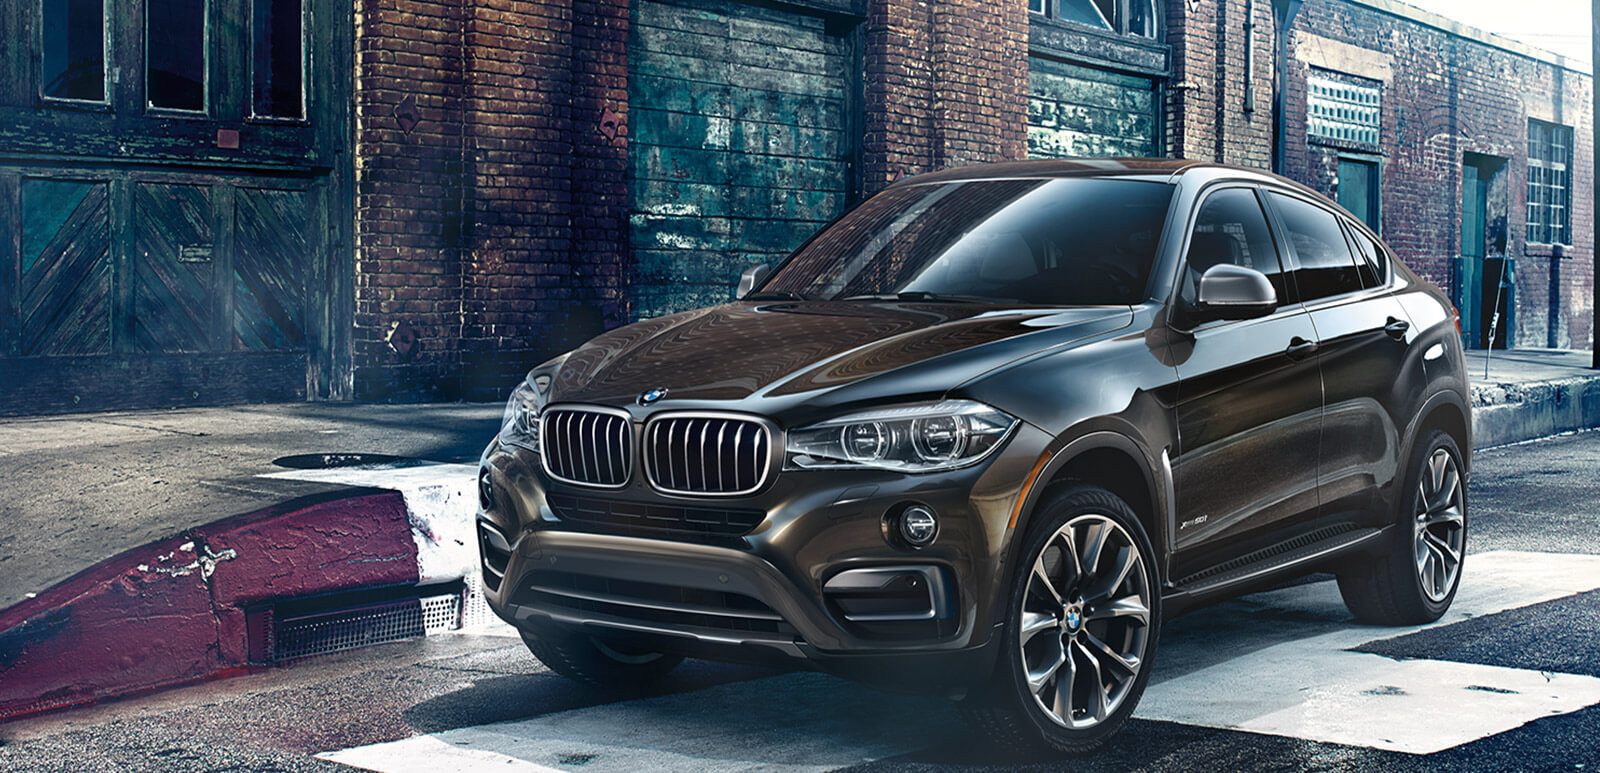 2017 BMW X6 for Sale near Gary, IN